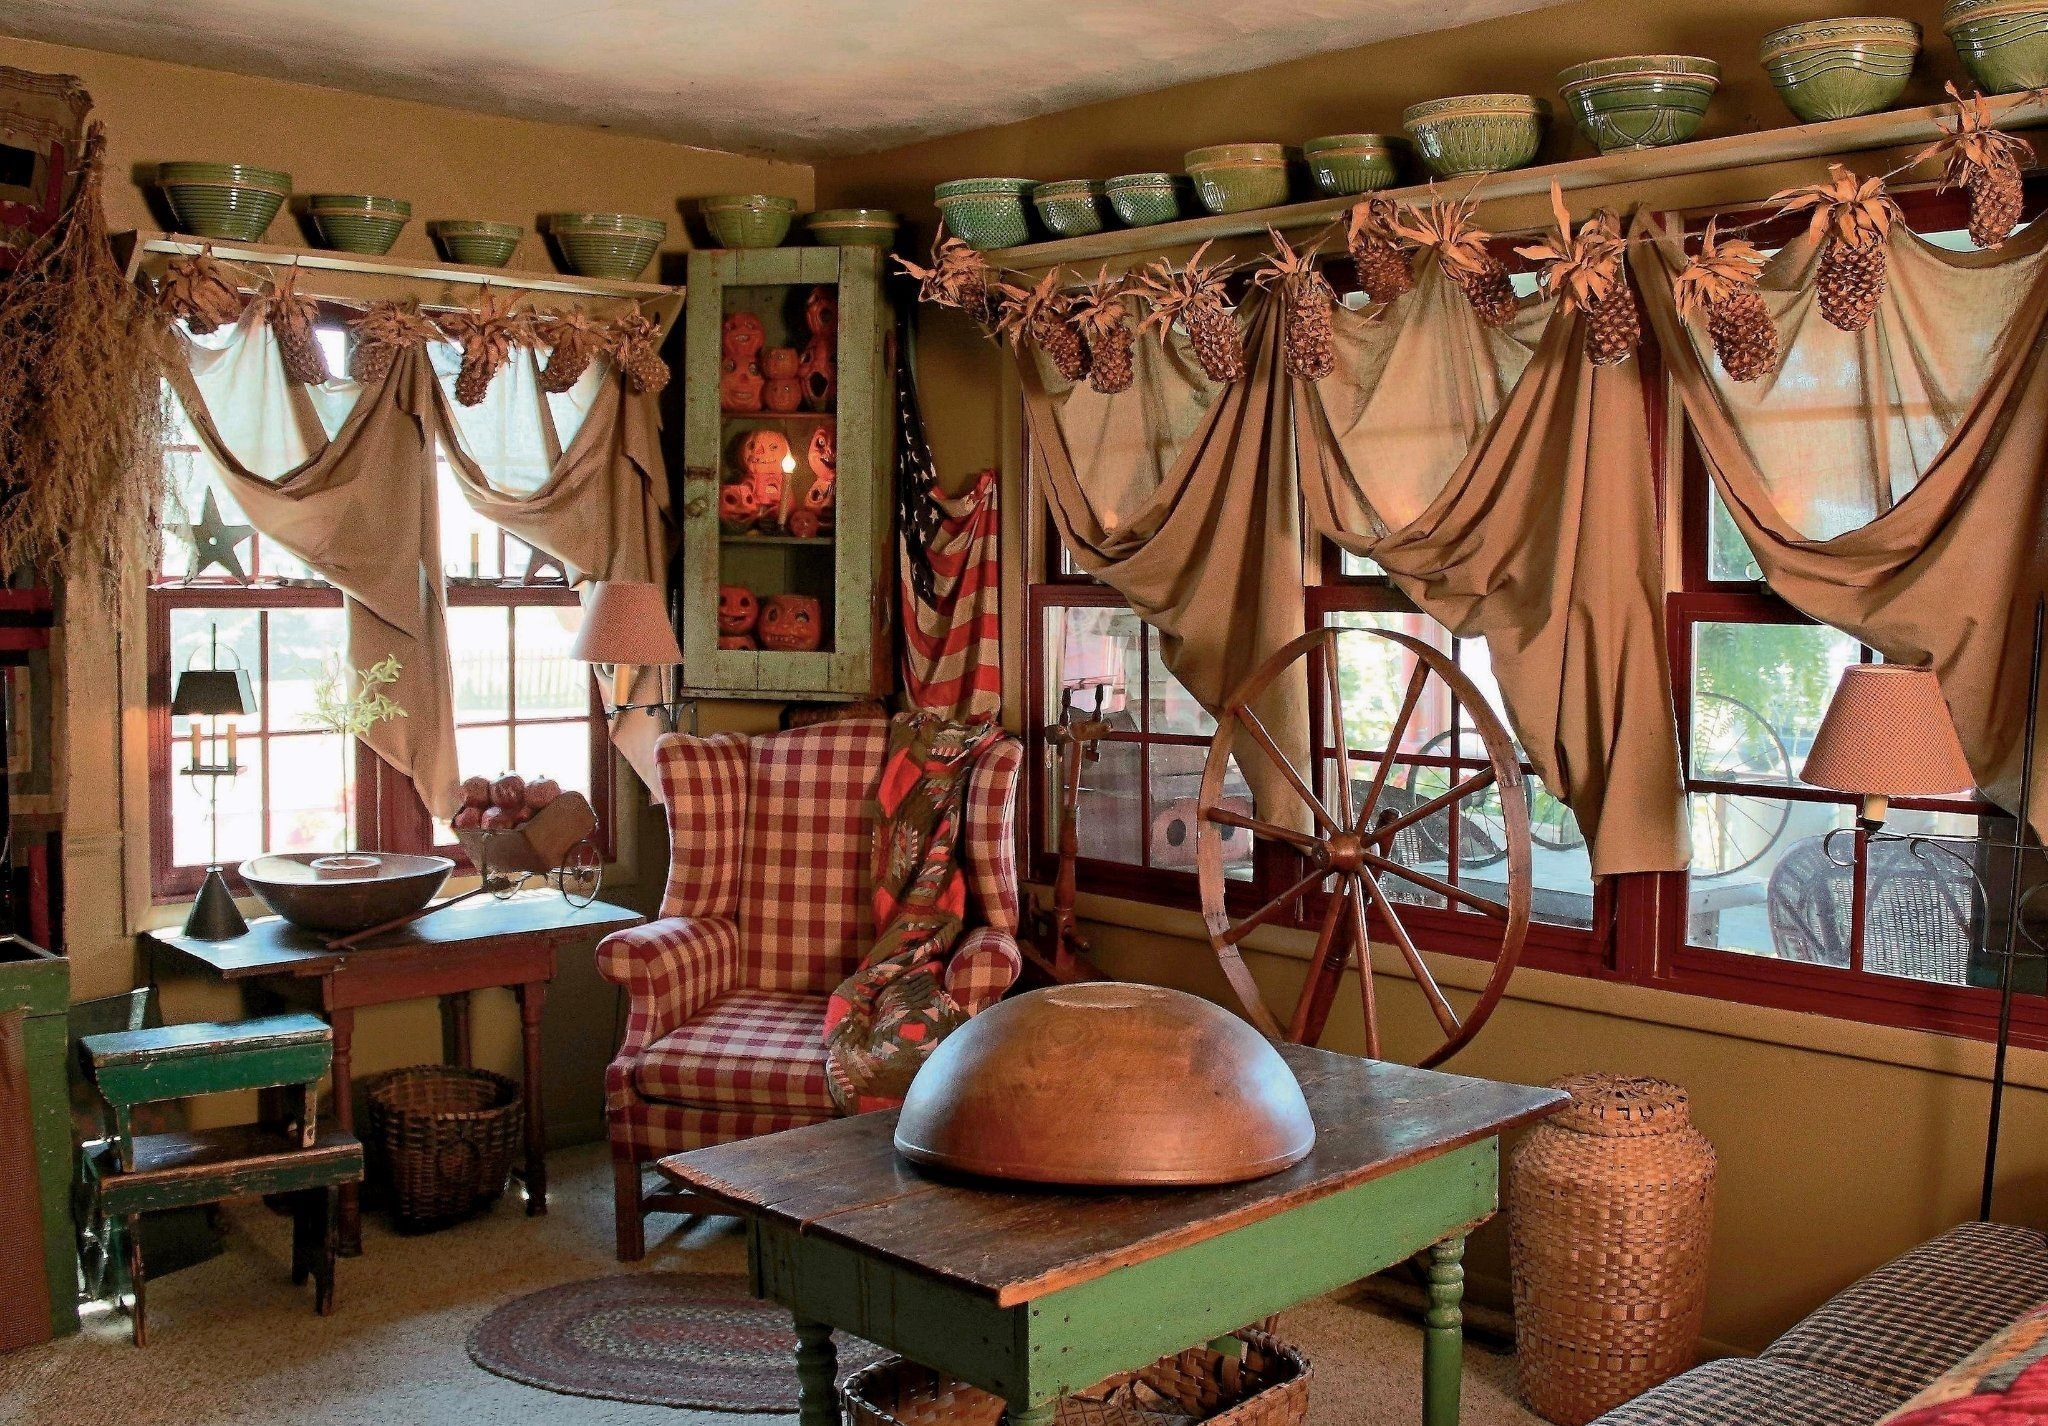 20 inspiring primitive home decor examples | drapery, window ideas with Primitive Curtains Decor